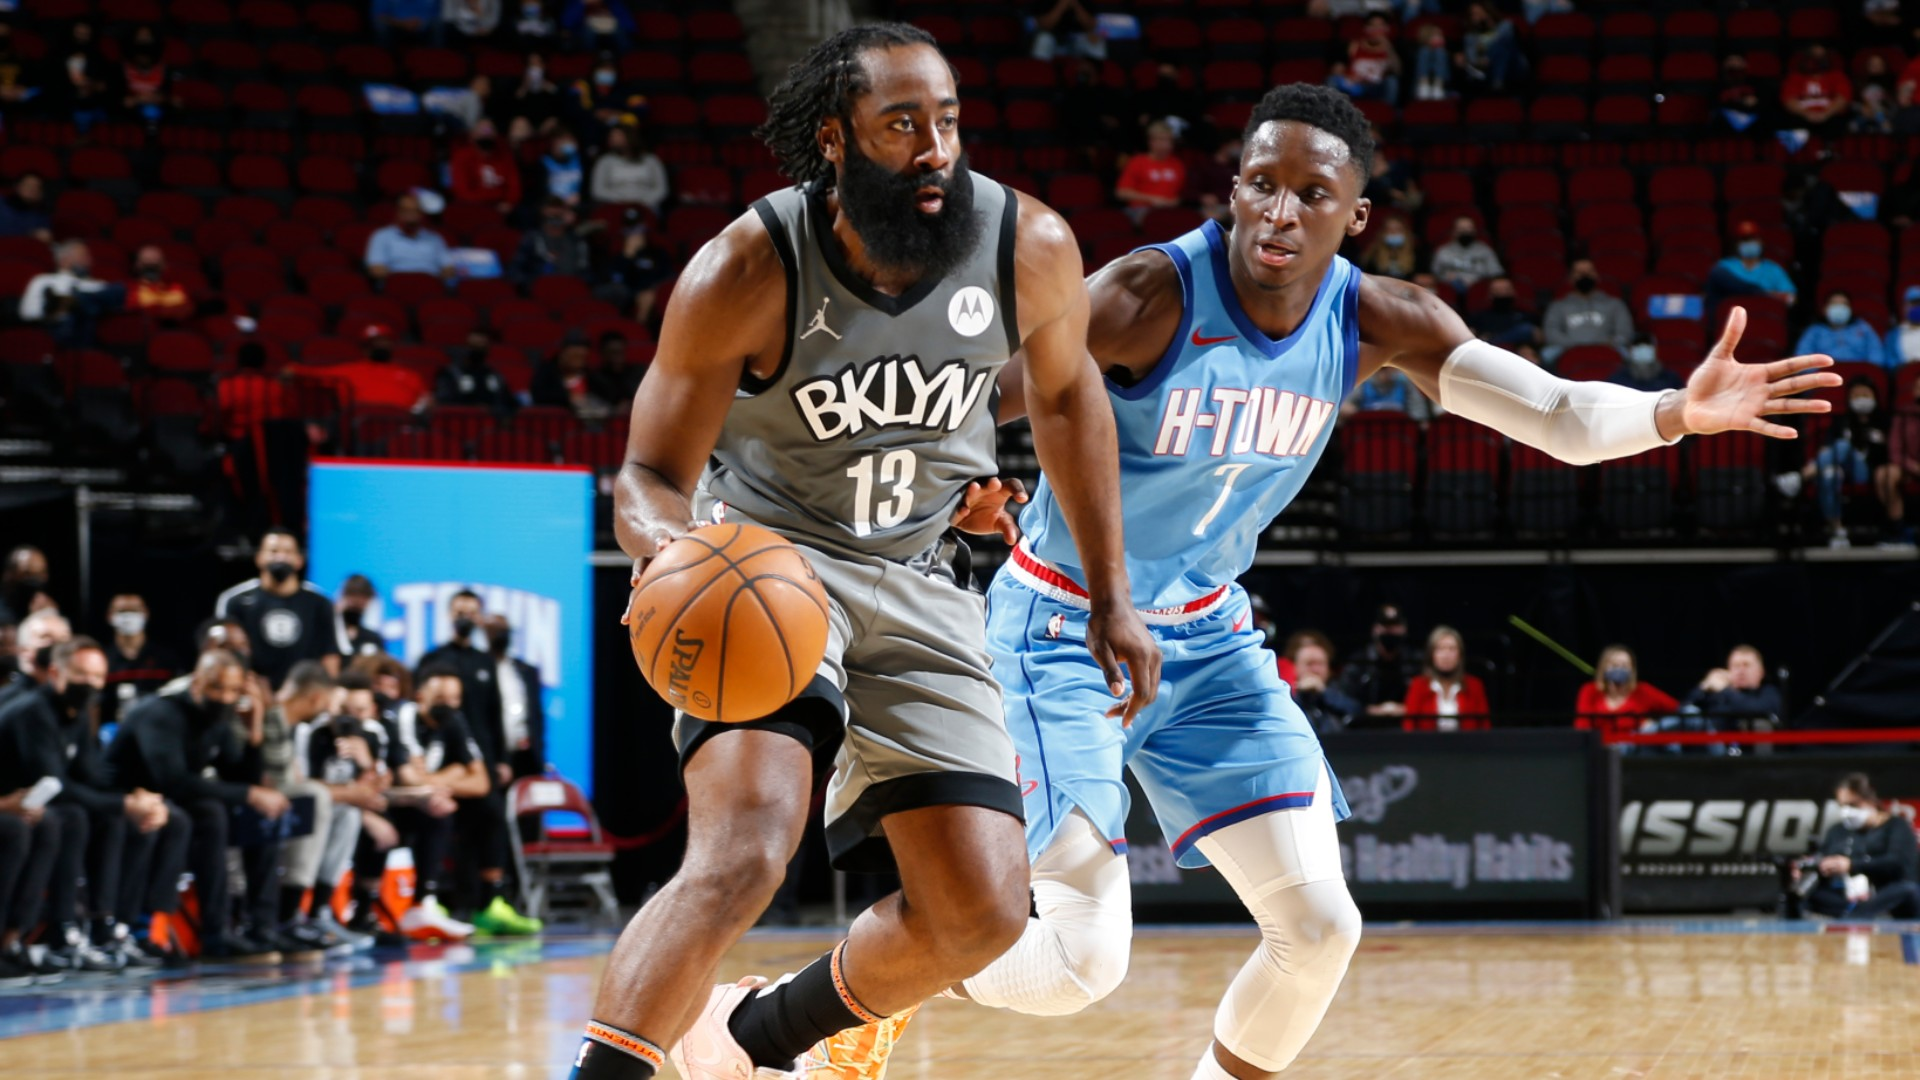 Nets' Harden has triple-double to down former team Rockets: I wasn't trying to show off